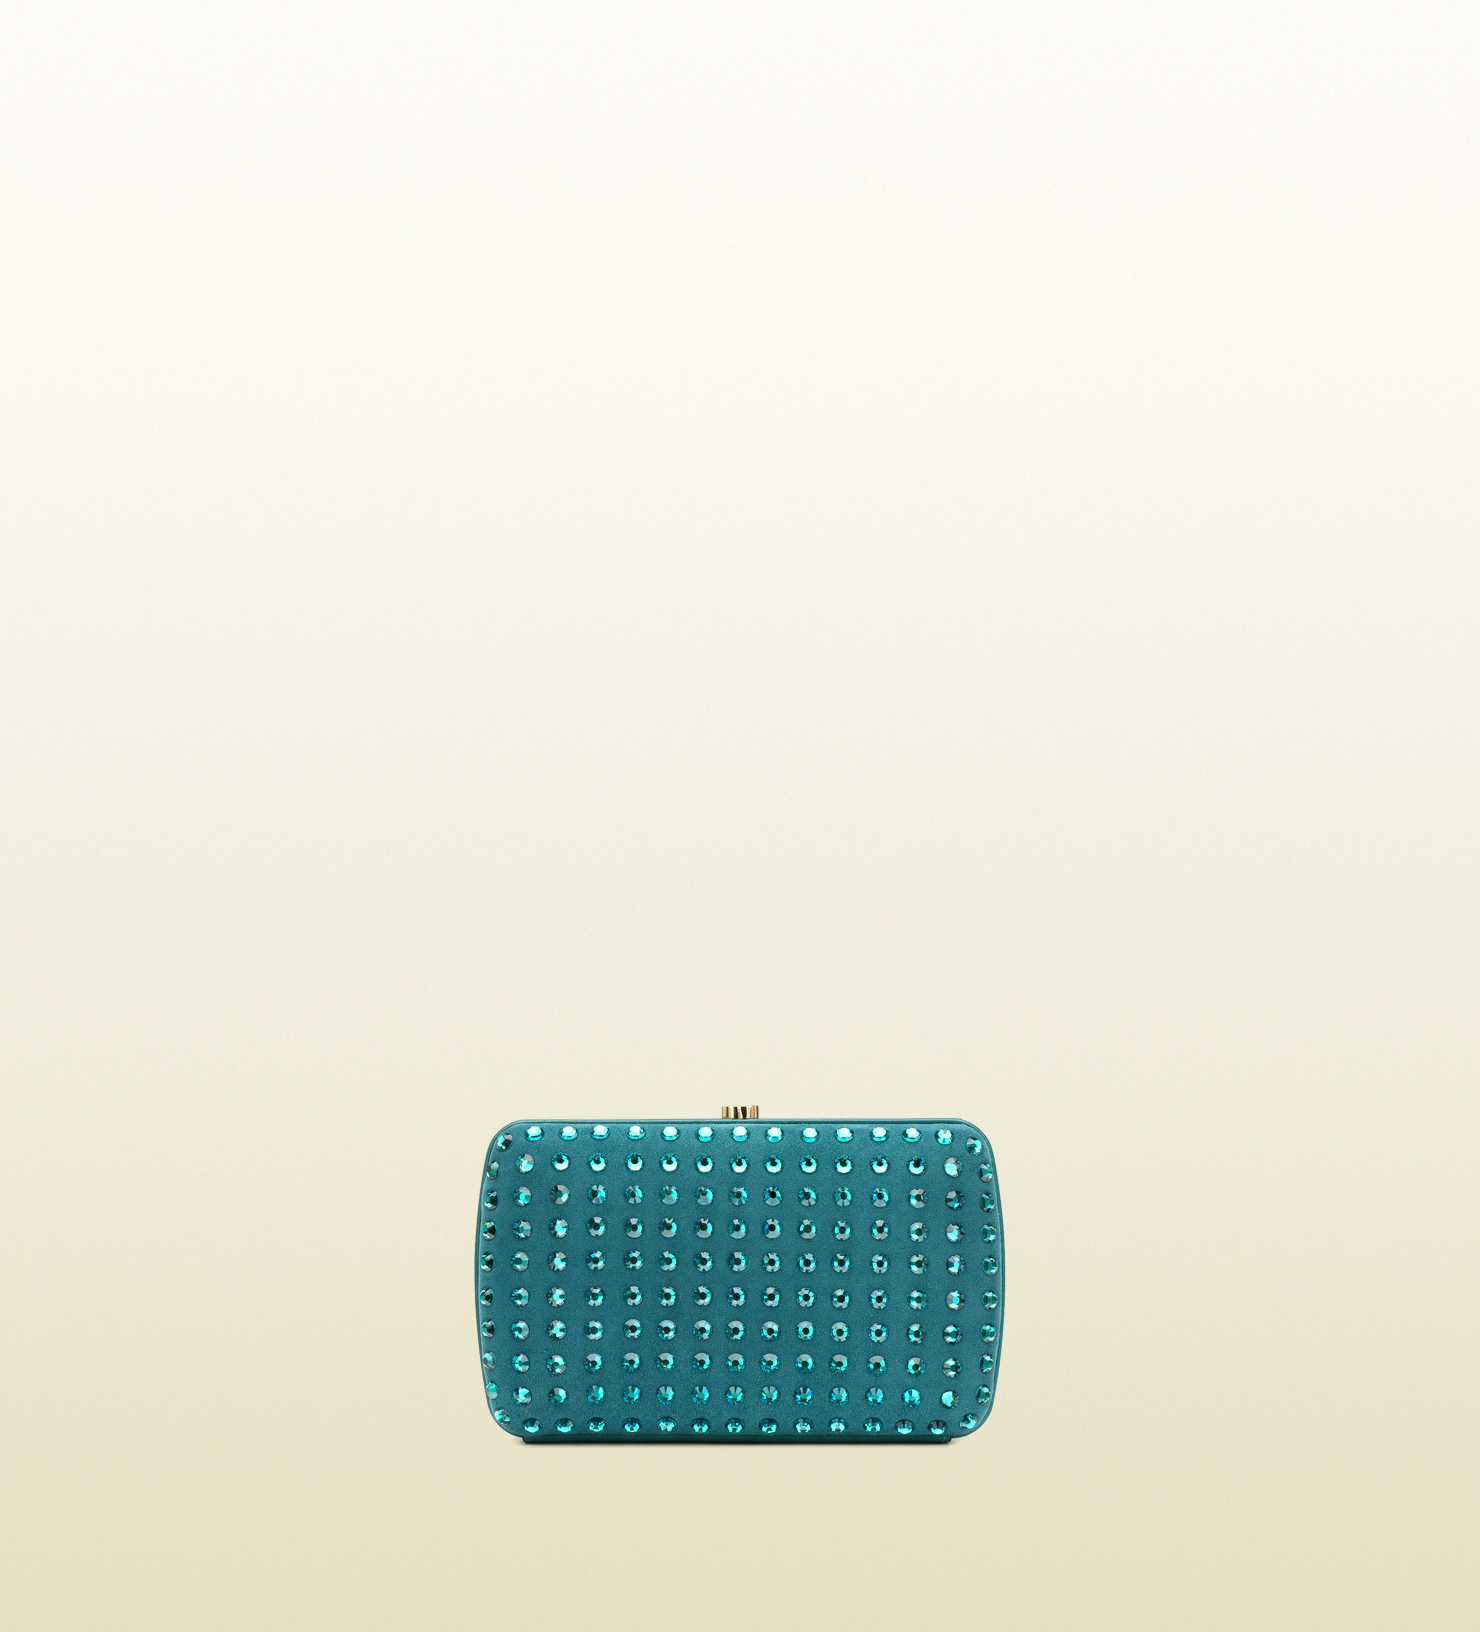 6f53bbb6435bca Gucci Broadway Suede Evening Clutch with Crystal Studs in Green - Lyst